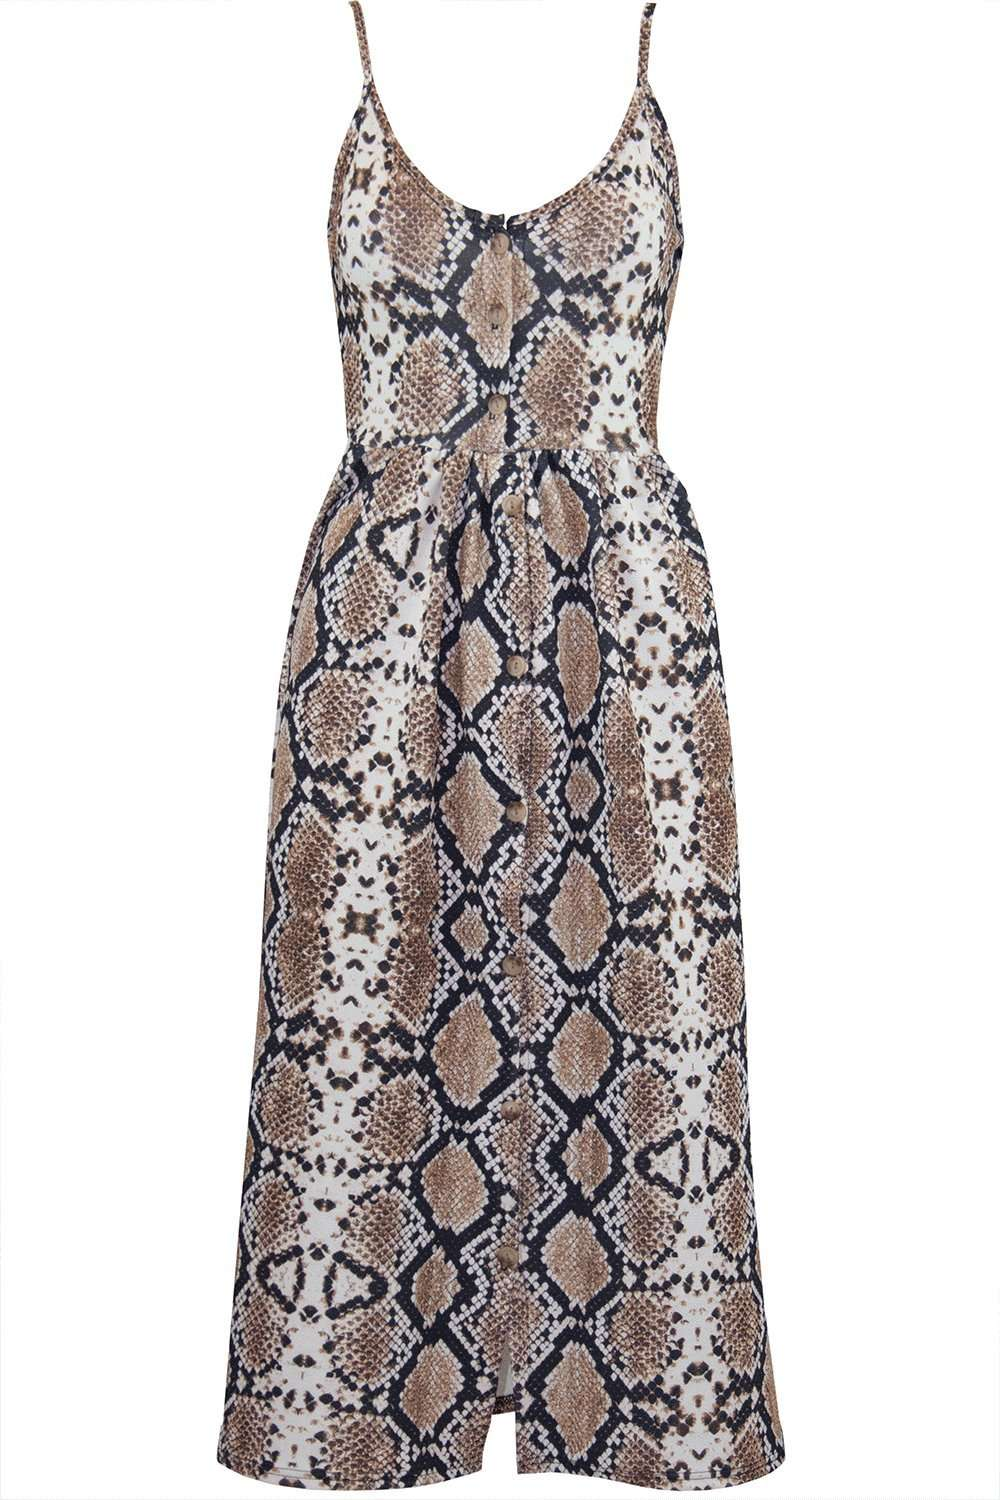 Strappy Button Embellished Snake Print Midi Dress - bejealous-com